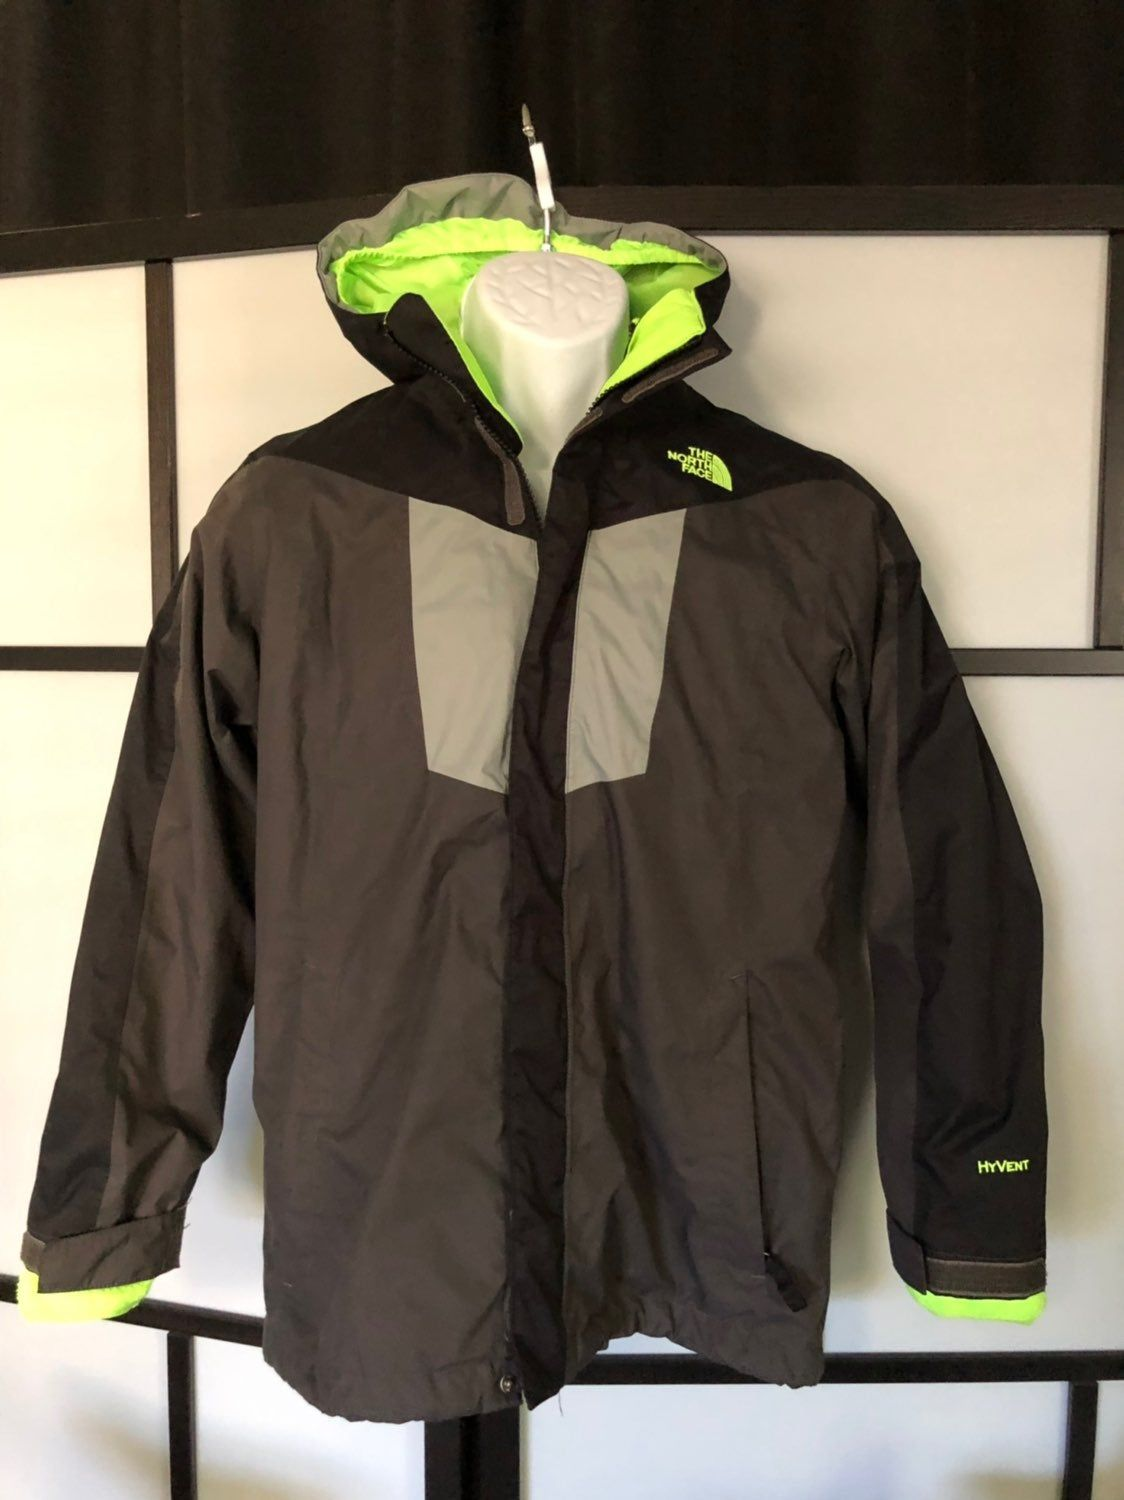 Kids The North Face Hyvent 2 In 1 Winter Coat Jacket Kids Sz L Large 14 16 Gray Black Green 2 In 1 Jacket W Jackets North Face Jacket Triclimate Jacket [ 1500 x 1124 Pixel ]